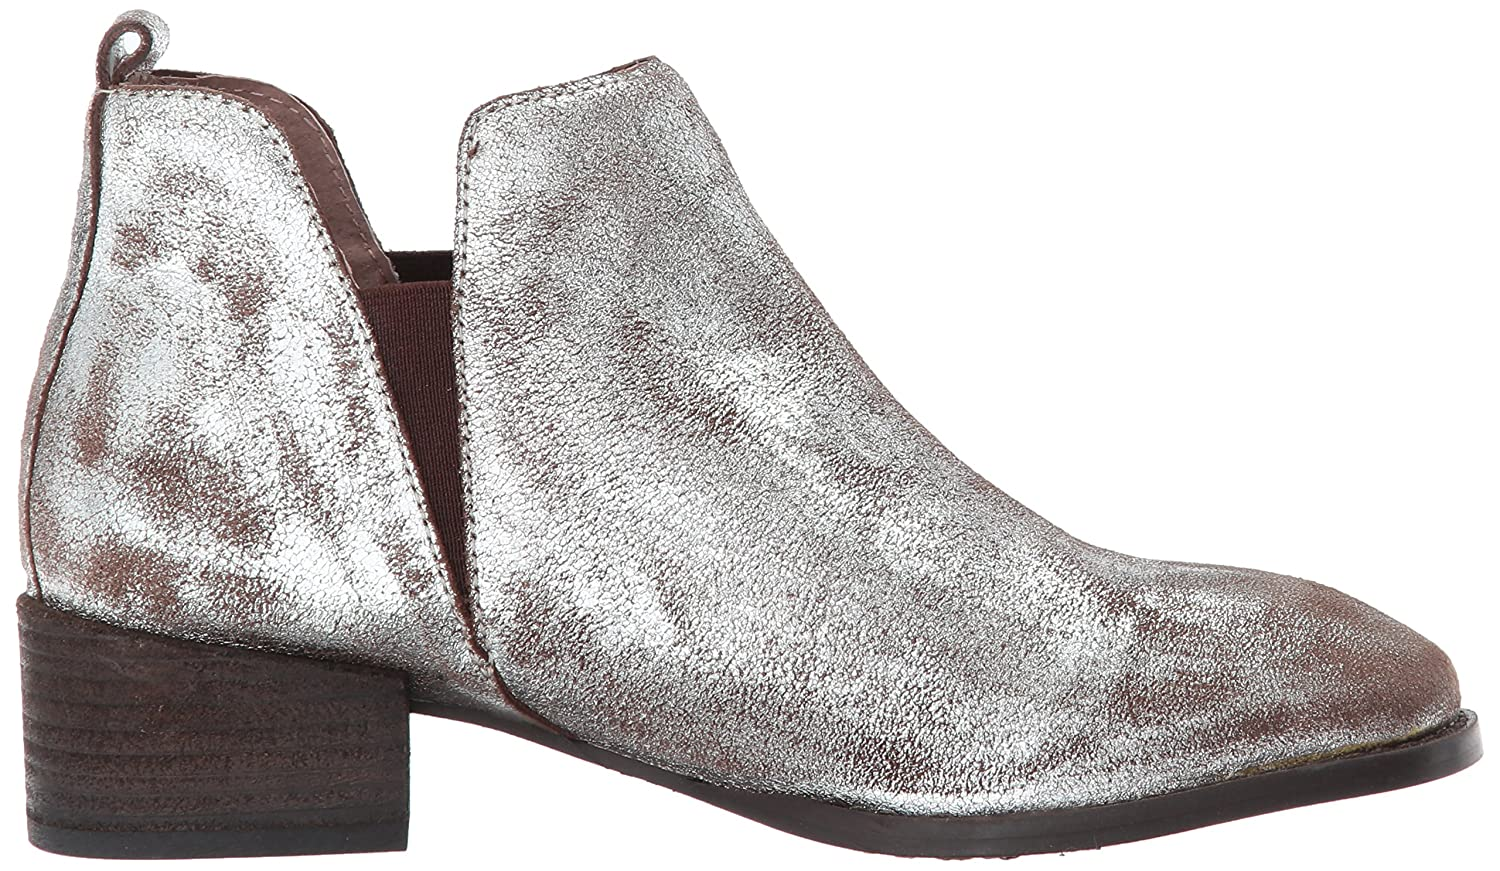 Seychelles Women's Offstage Ankle US|Pewter Bootie B06XDN4J2F 8 B(M) US|Pewter Ankle ec9637